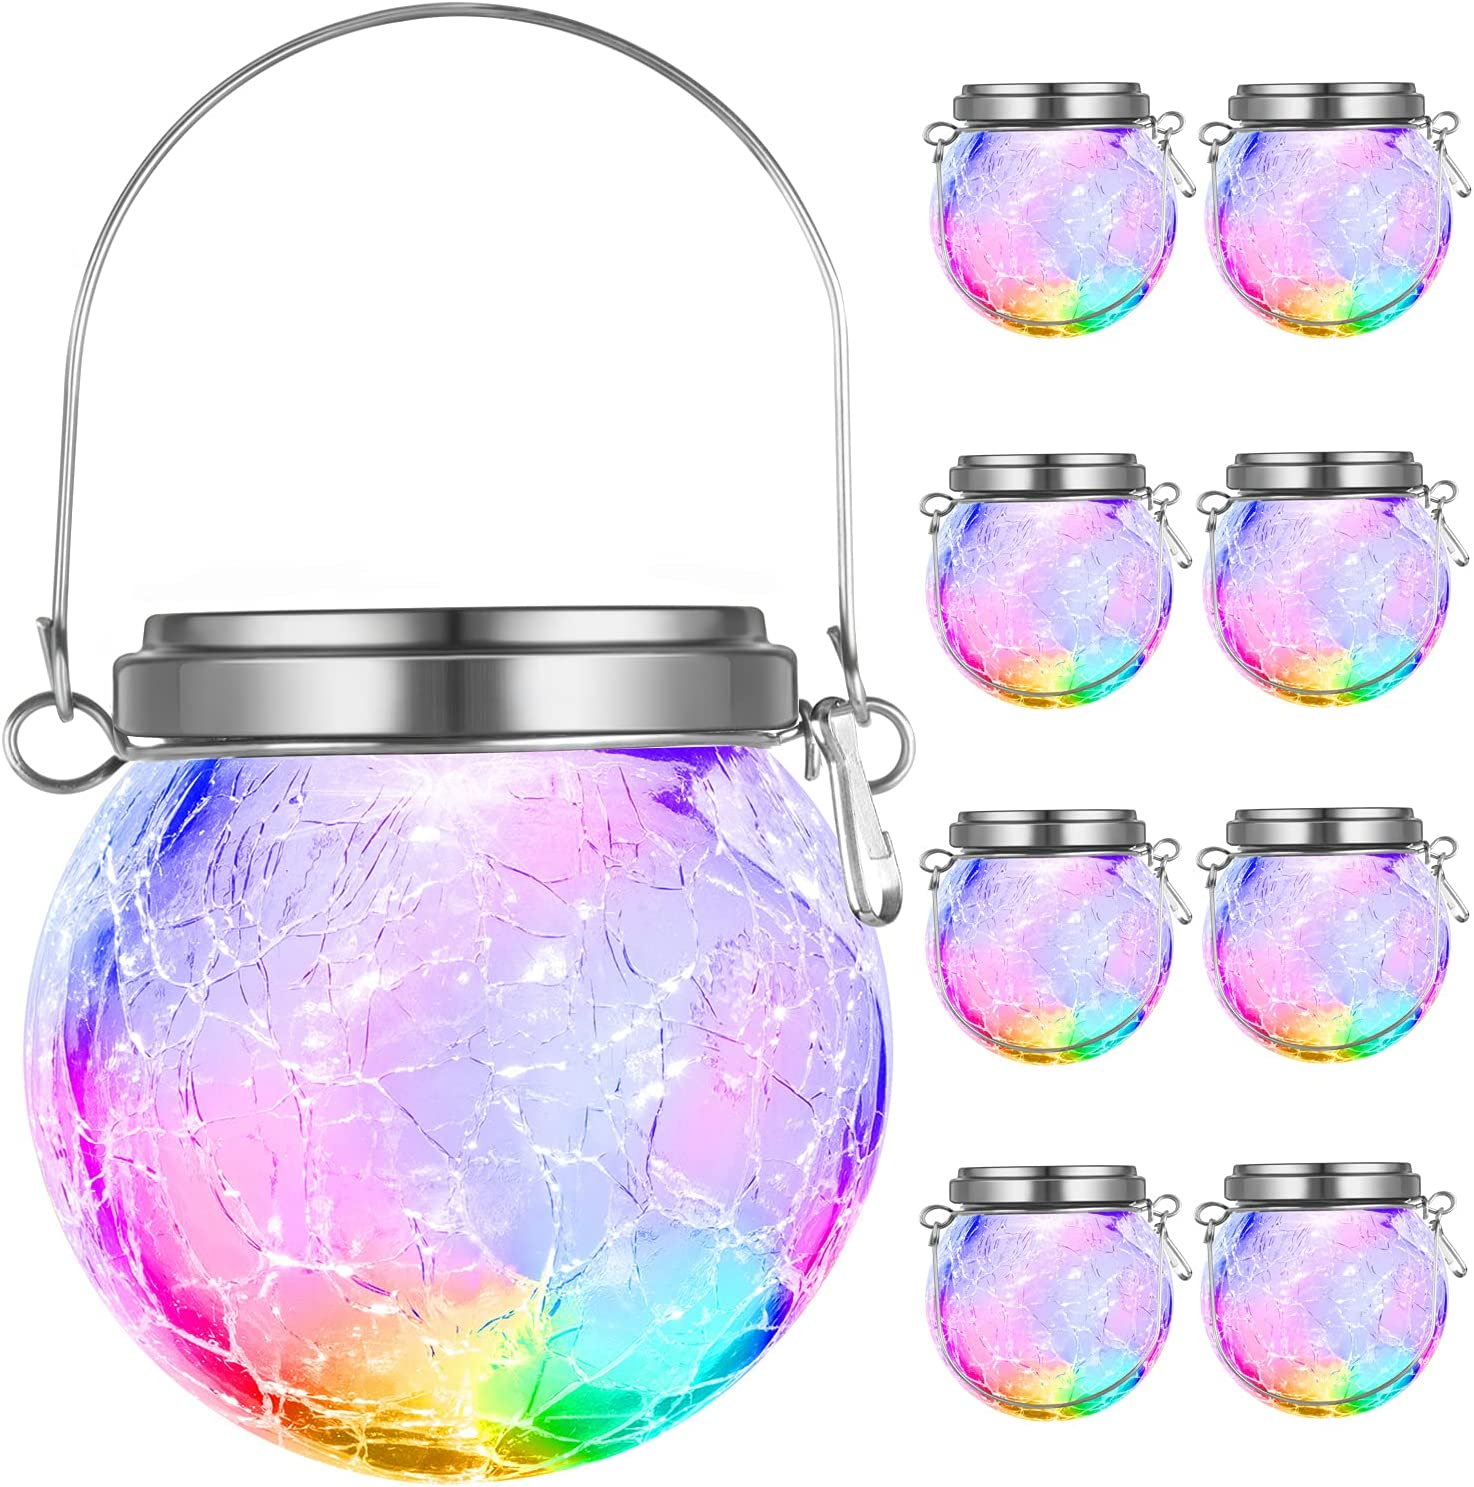 8-Pack Hanging Solar Lights Outdoor with 7 Color Auto-Changing, Decorative Cracked Glass Ball Lights Solar Powered, Globe Lantern Waterproof for Garden, Yard, Patio, Tree, Holiday Decor (Multicolor)